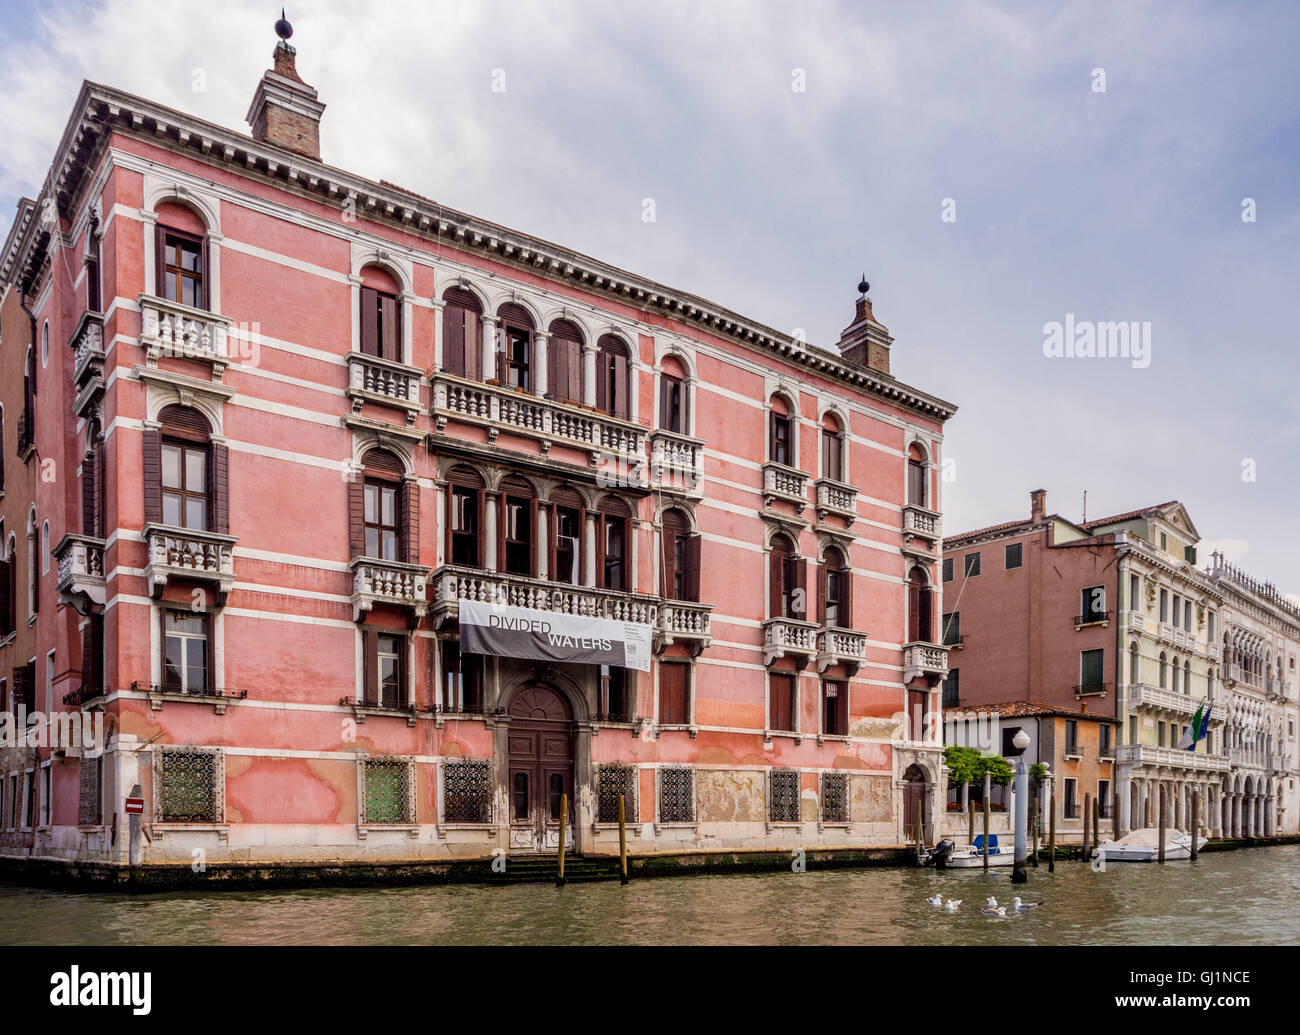 "Palazzo Fontana Rezzonico, venue for ""Divided Waters"" exhibition commemorates 500th anniversary of the Jewish Ghetto,Venice. - Stock Image"